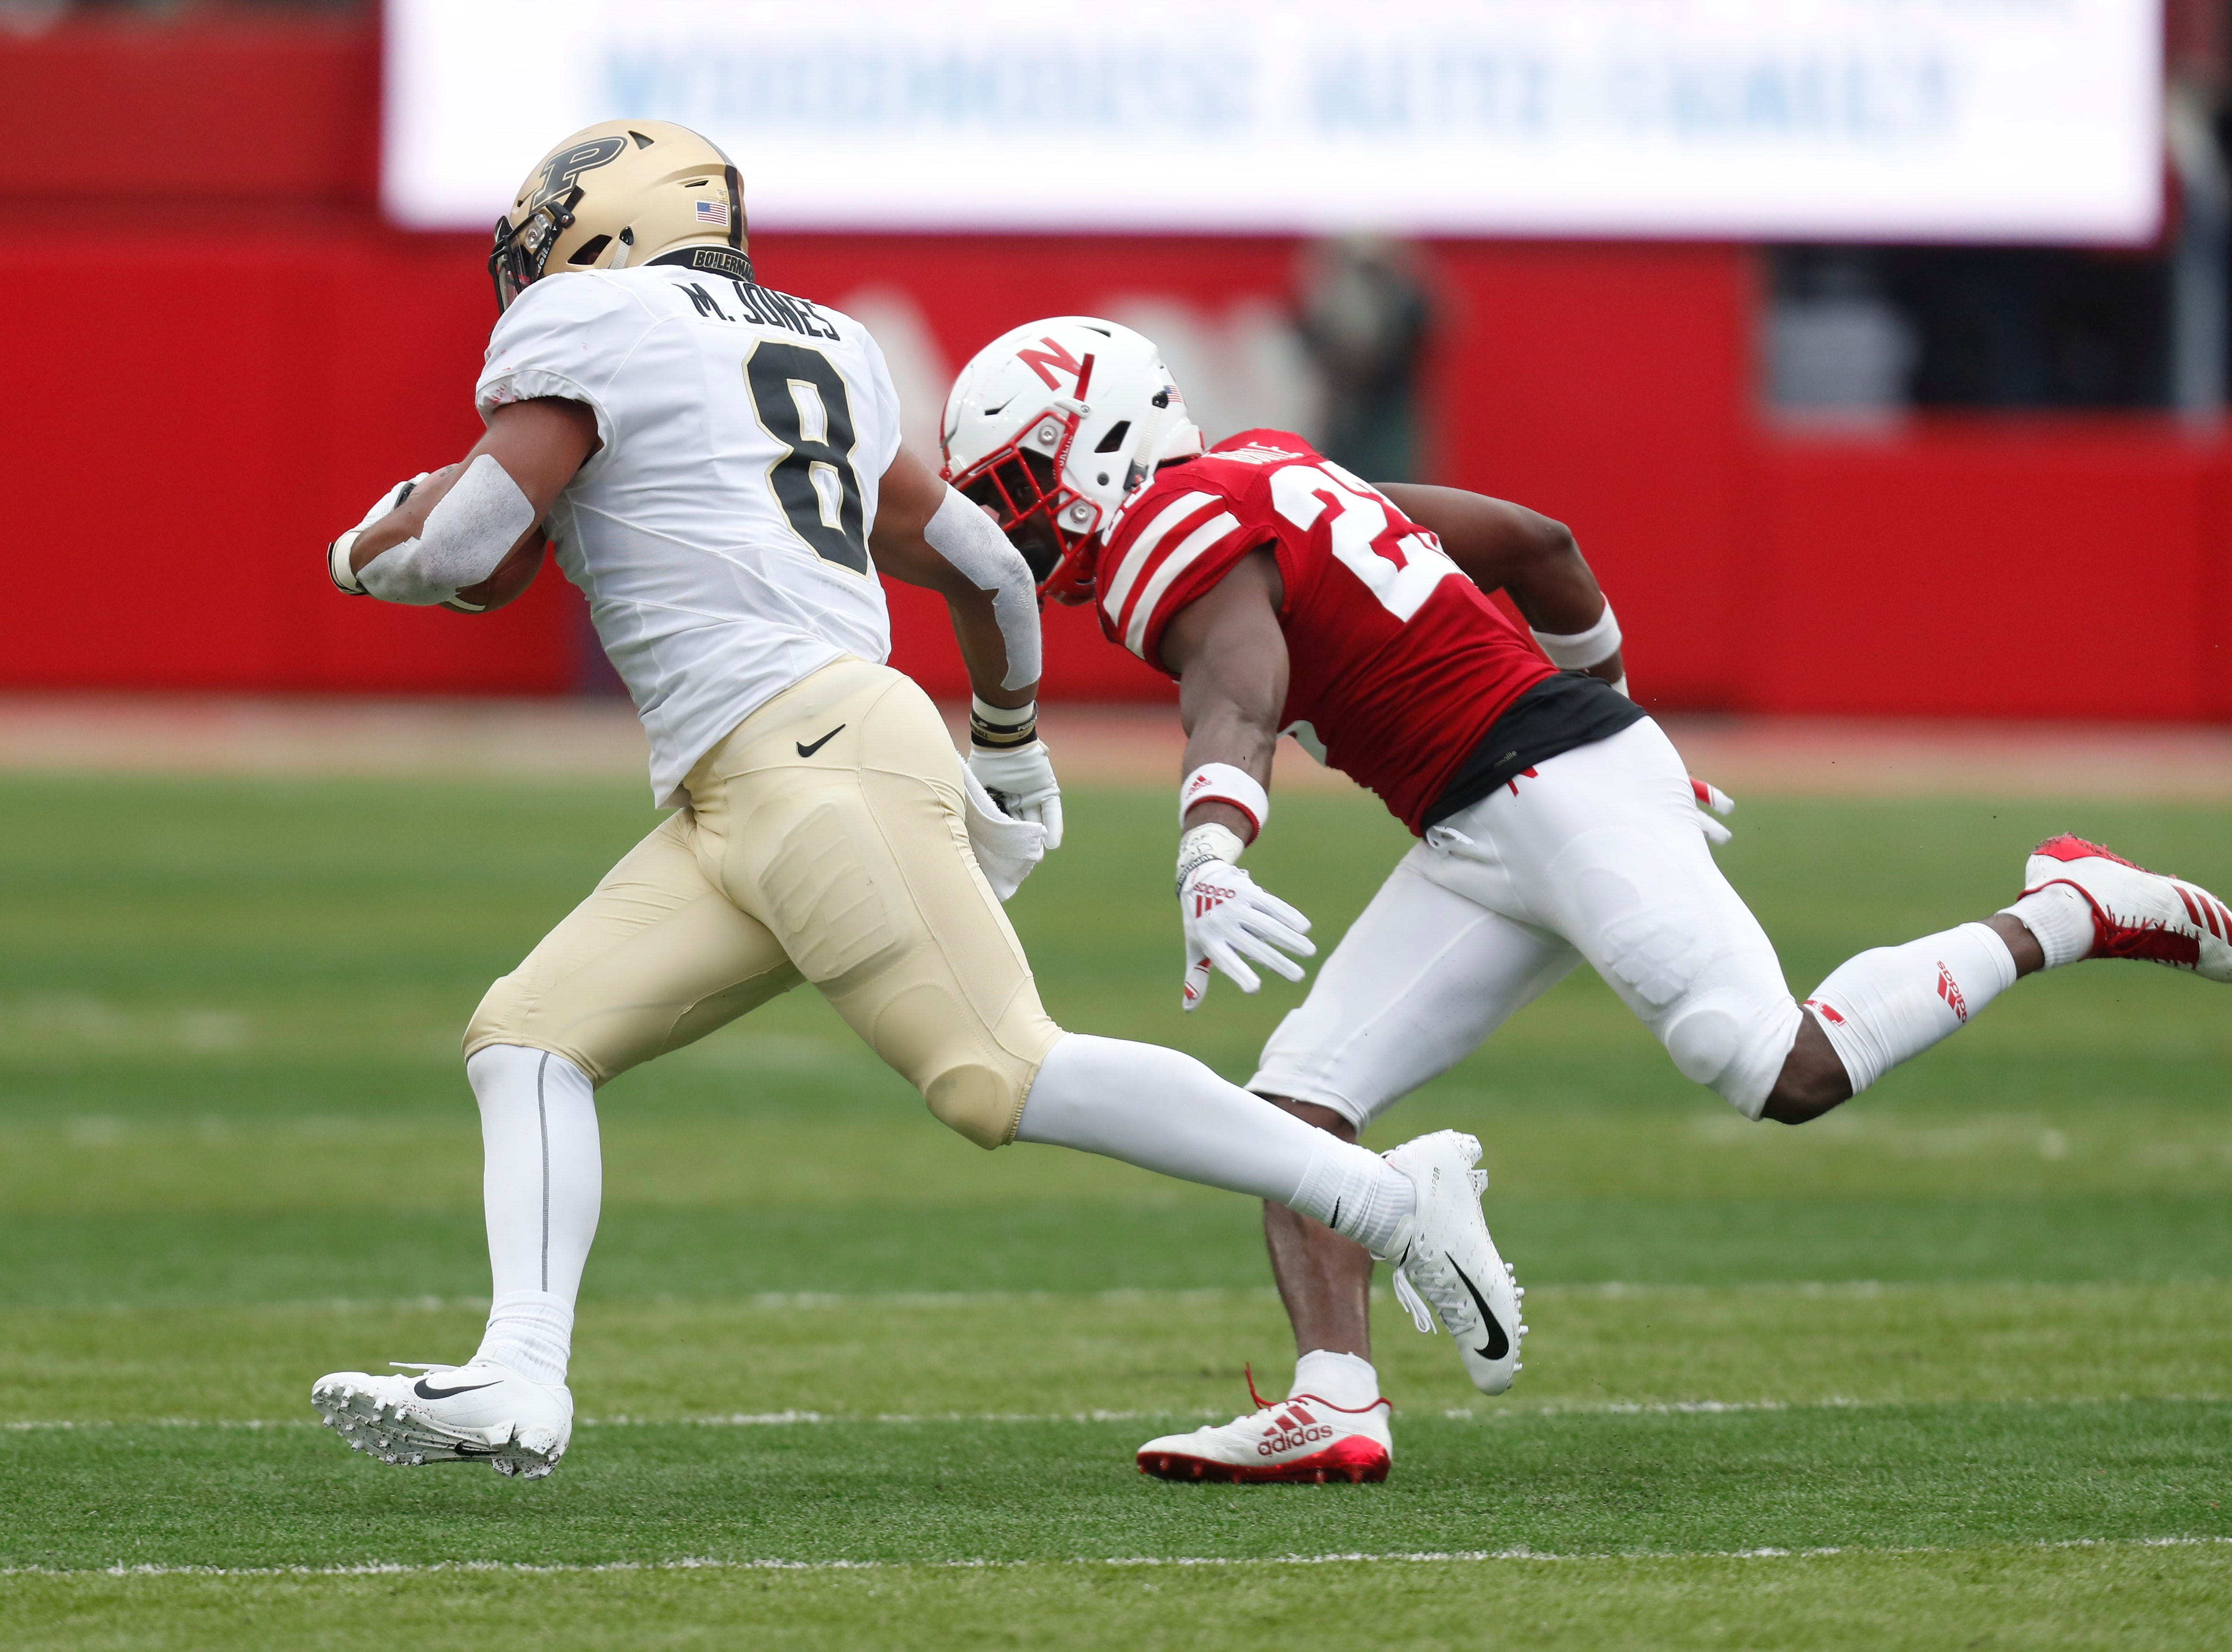 Sep 29, 2018; Lincoln, NE, USA; Purdue Boilermakers running back Markell Jones (8) gets away from Nebraska Cornhuskers cornerback Decaprio Bootle (23) in the first half at Memorial Stadium. Mandatory Credit: Bruce Thorson-USA TODAY Sports